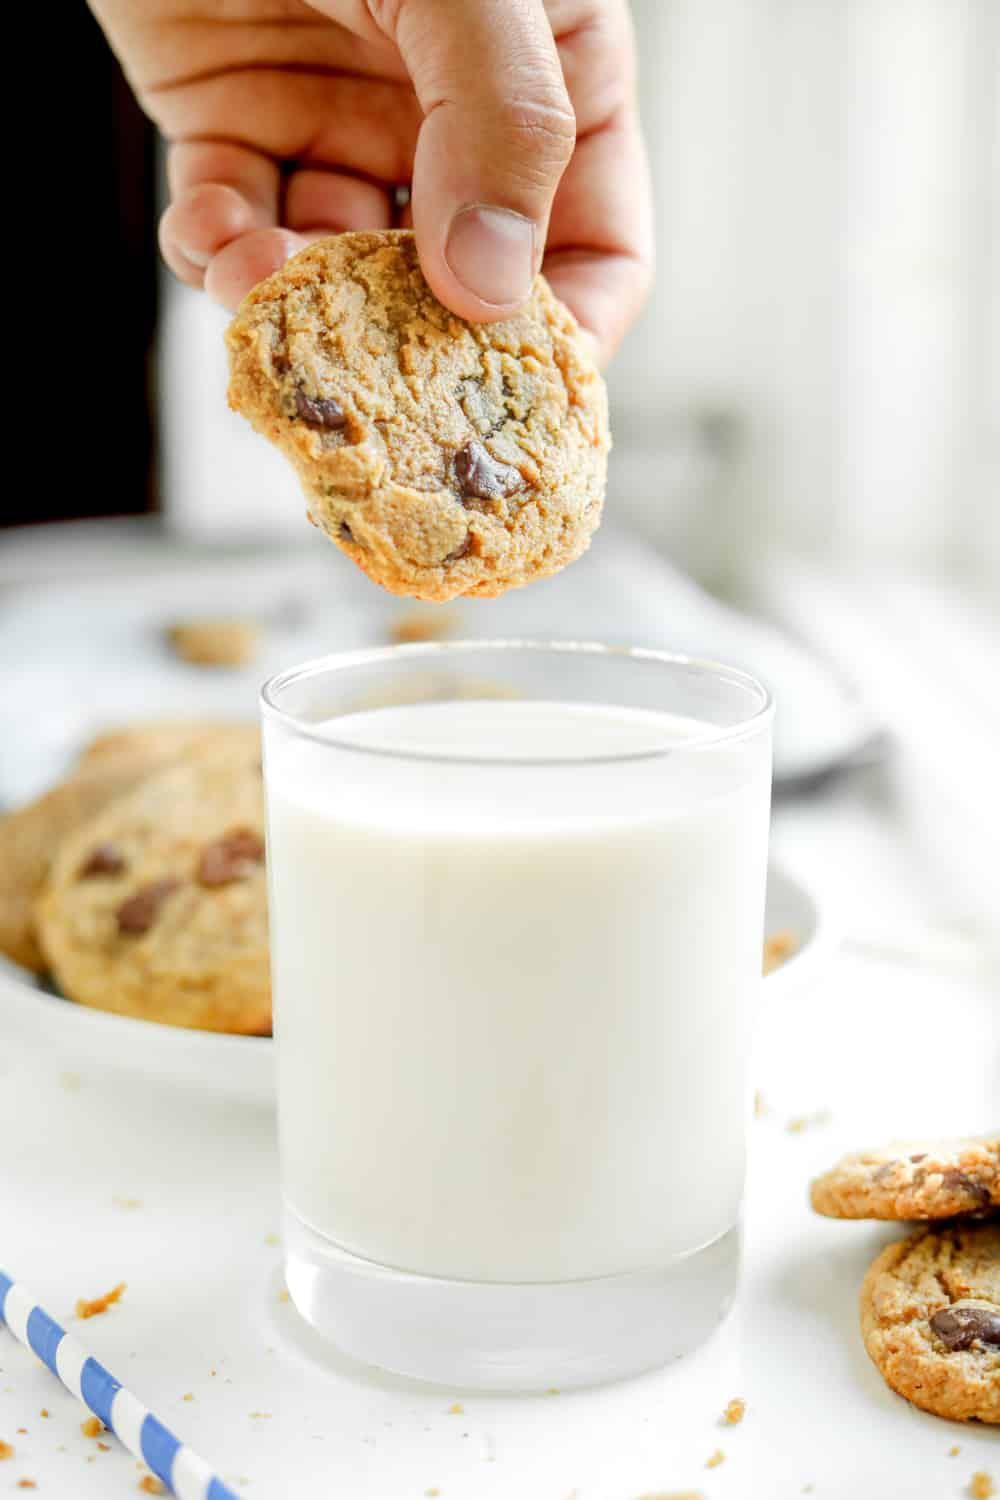 A chocolate chip cookie about to be dipped into a glass of milk.